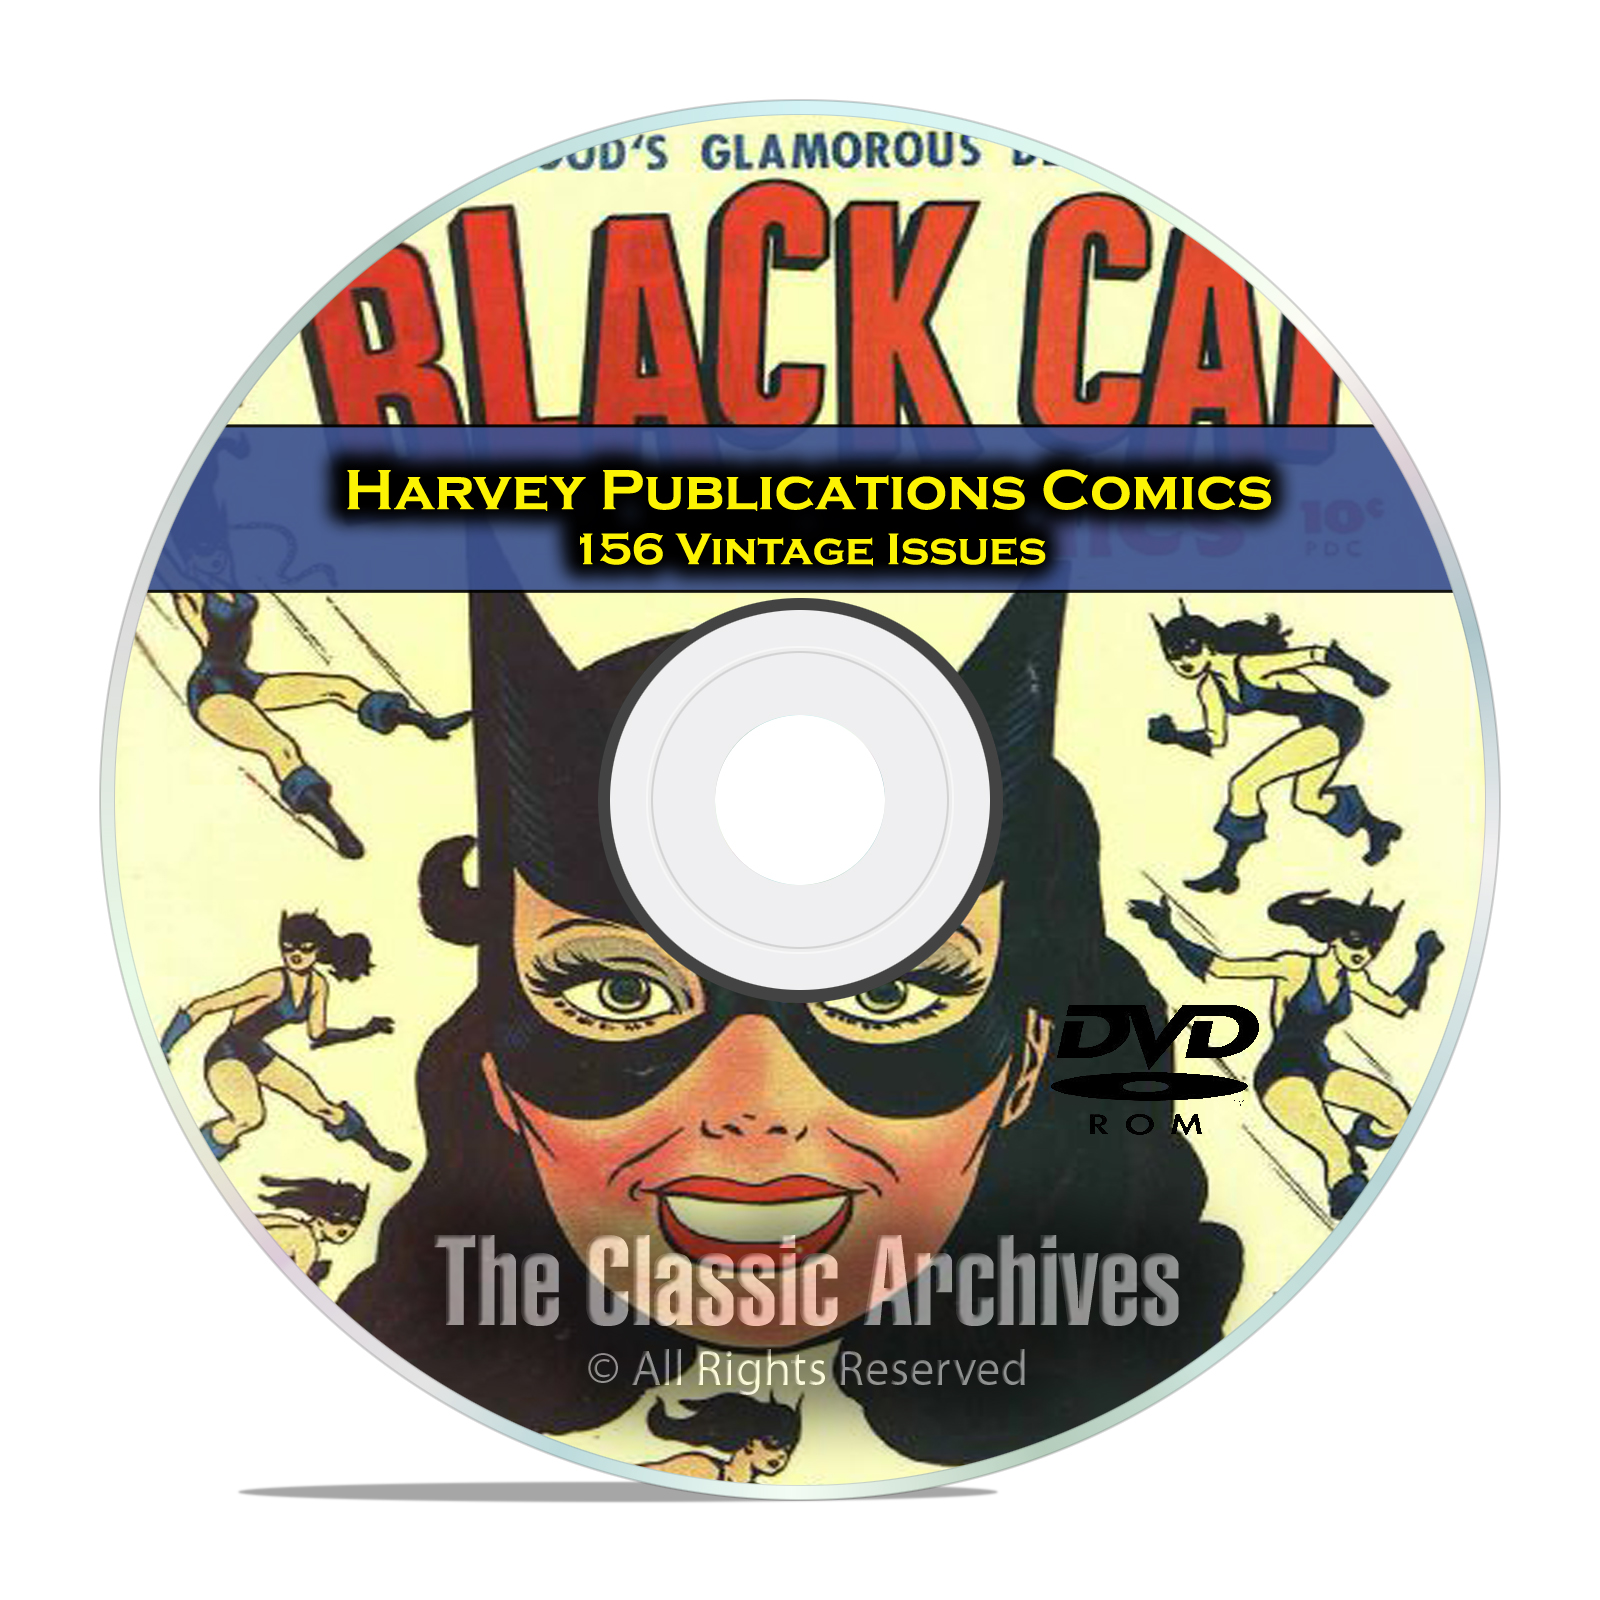 Harvey Publications Comics 156 Issues, Black Cat, Golden Age Comics PDF DVD - Click Image to Close